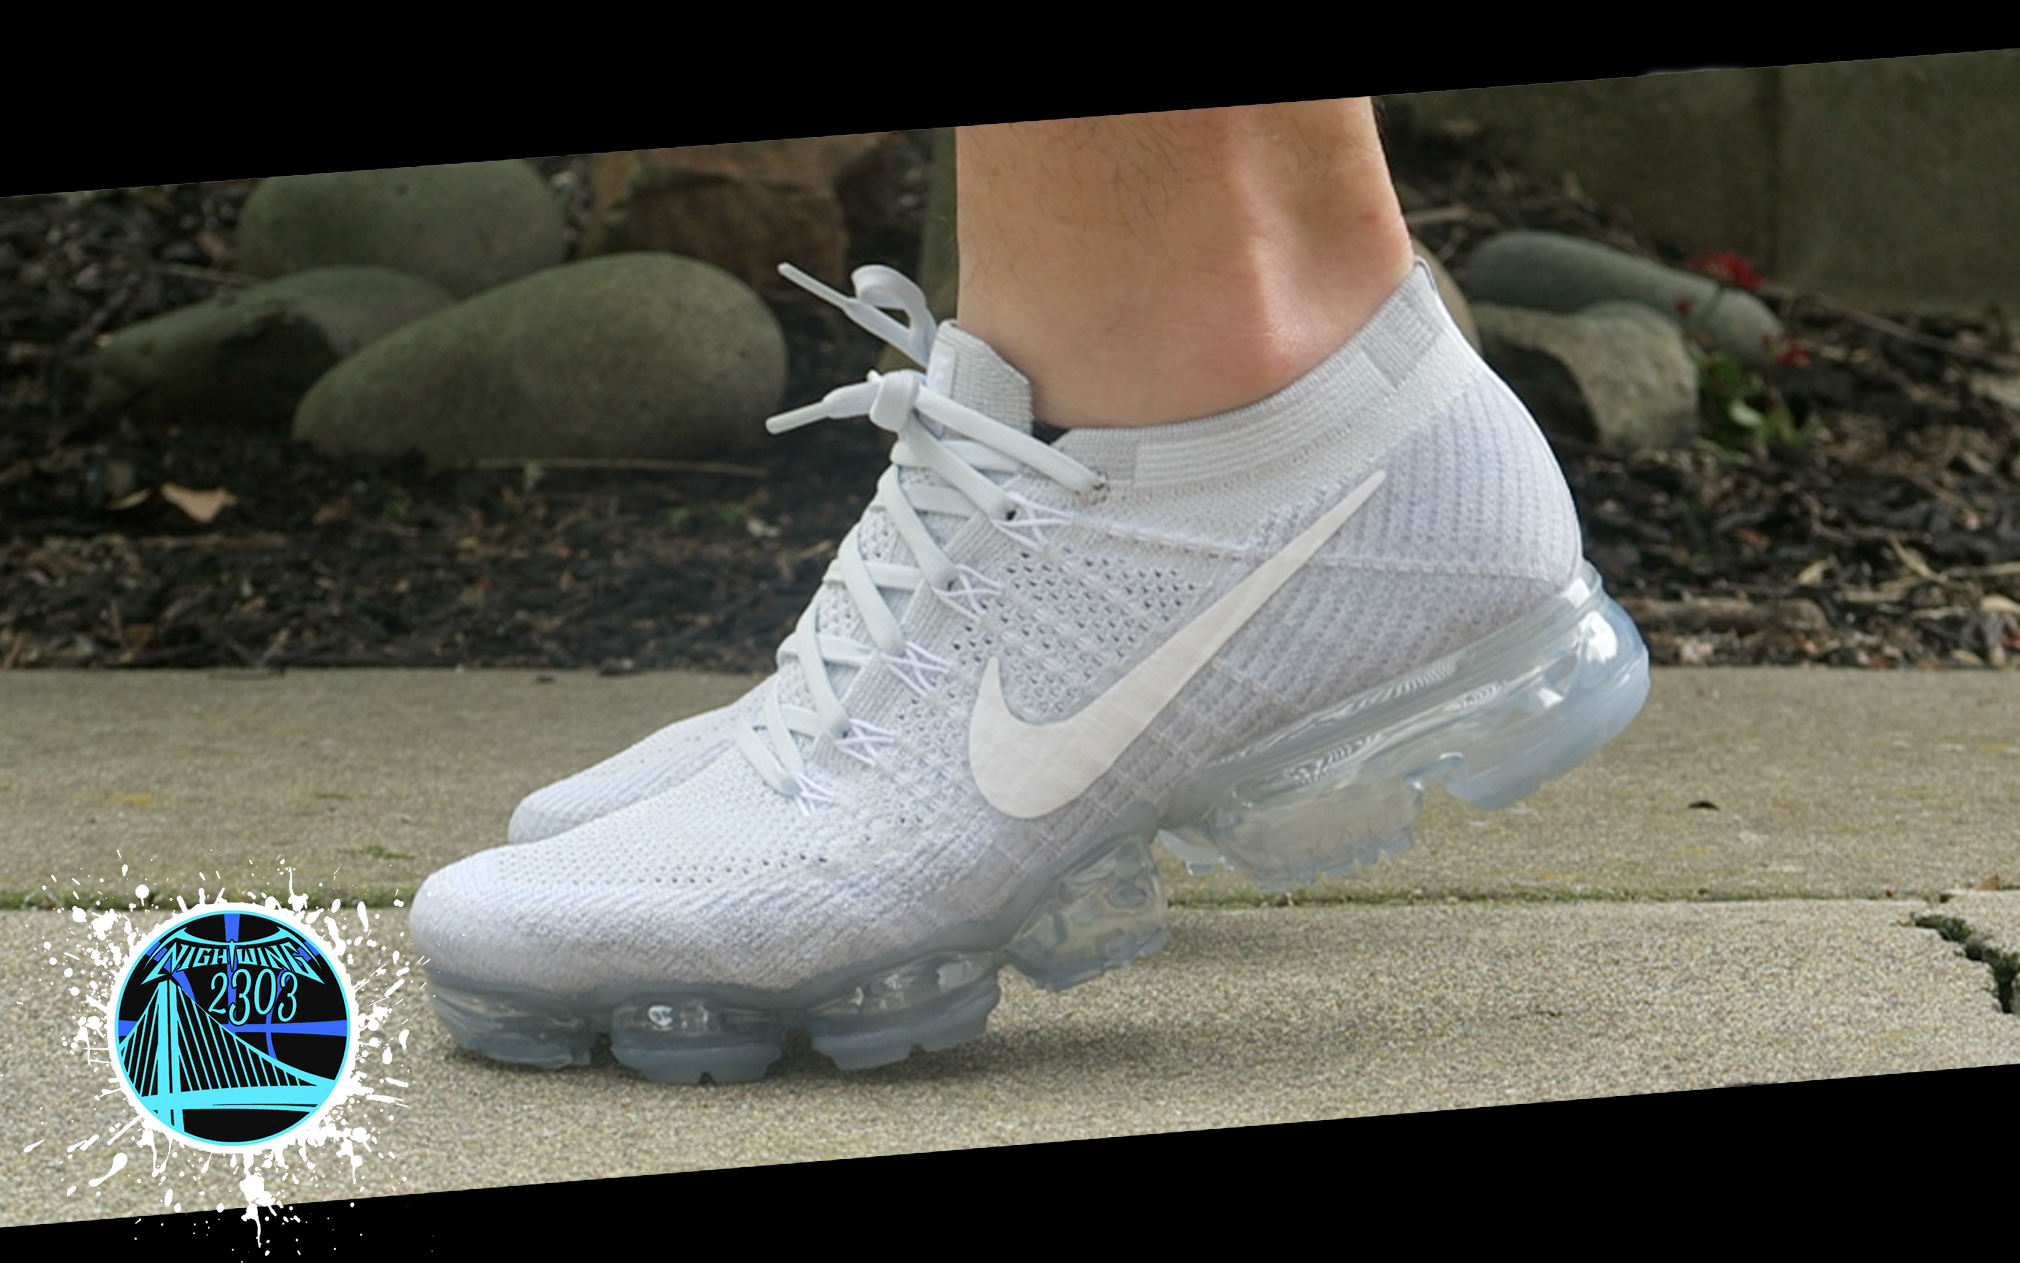 NIKE AIR VAPORMAX REVIEW